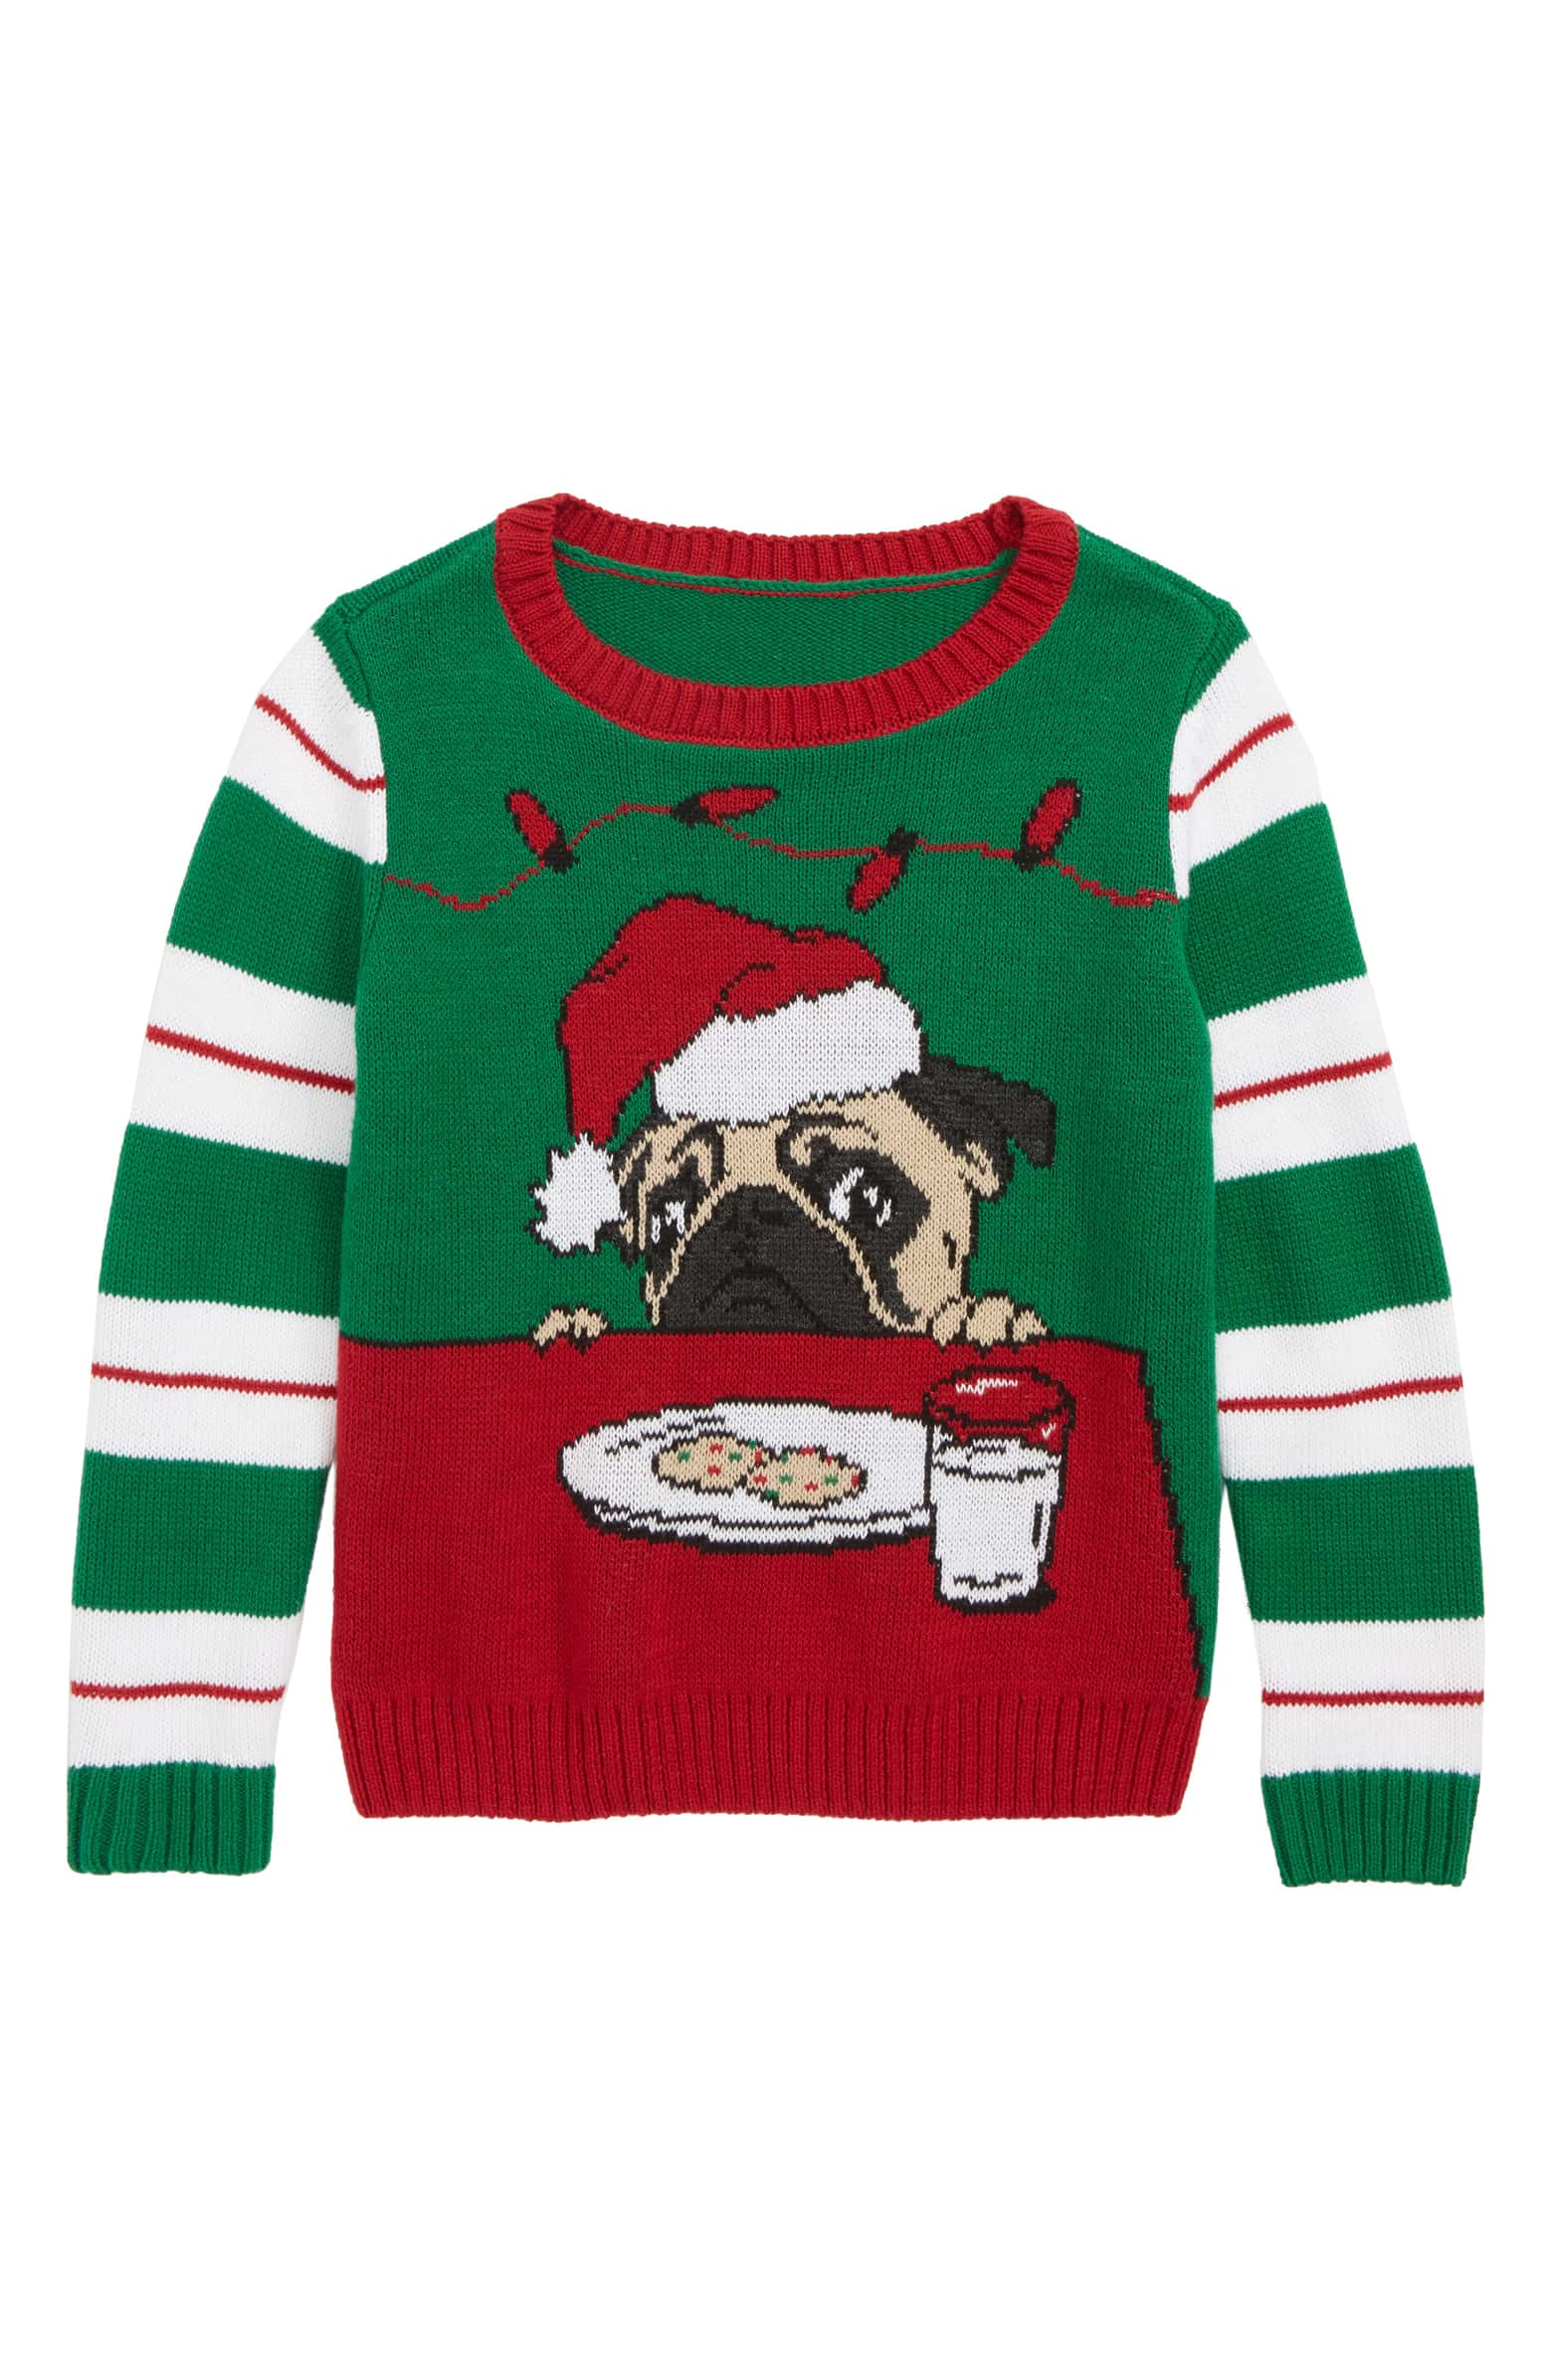 The 17 Best Ugly Christmas Sweaters We